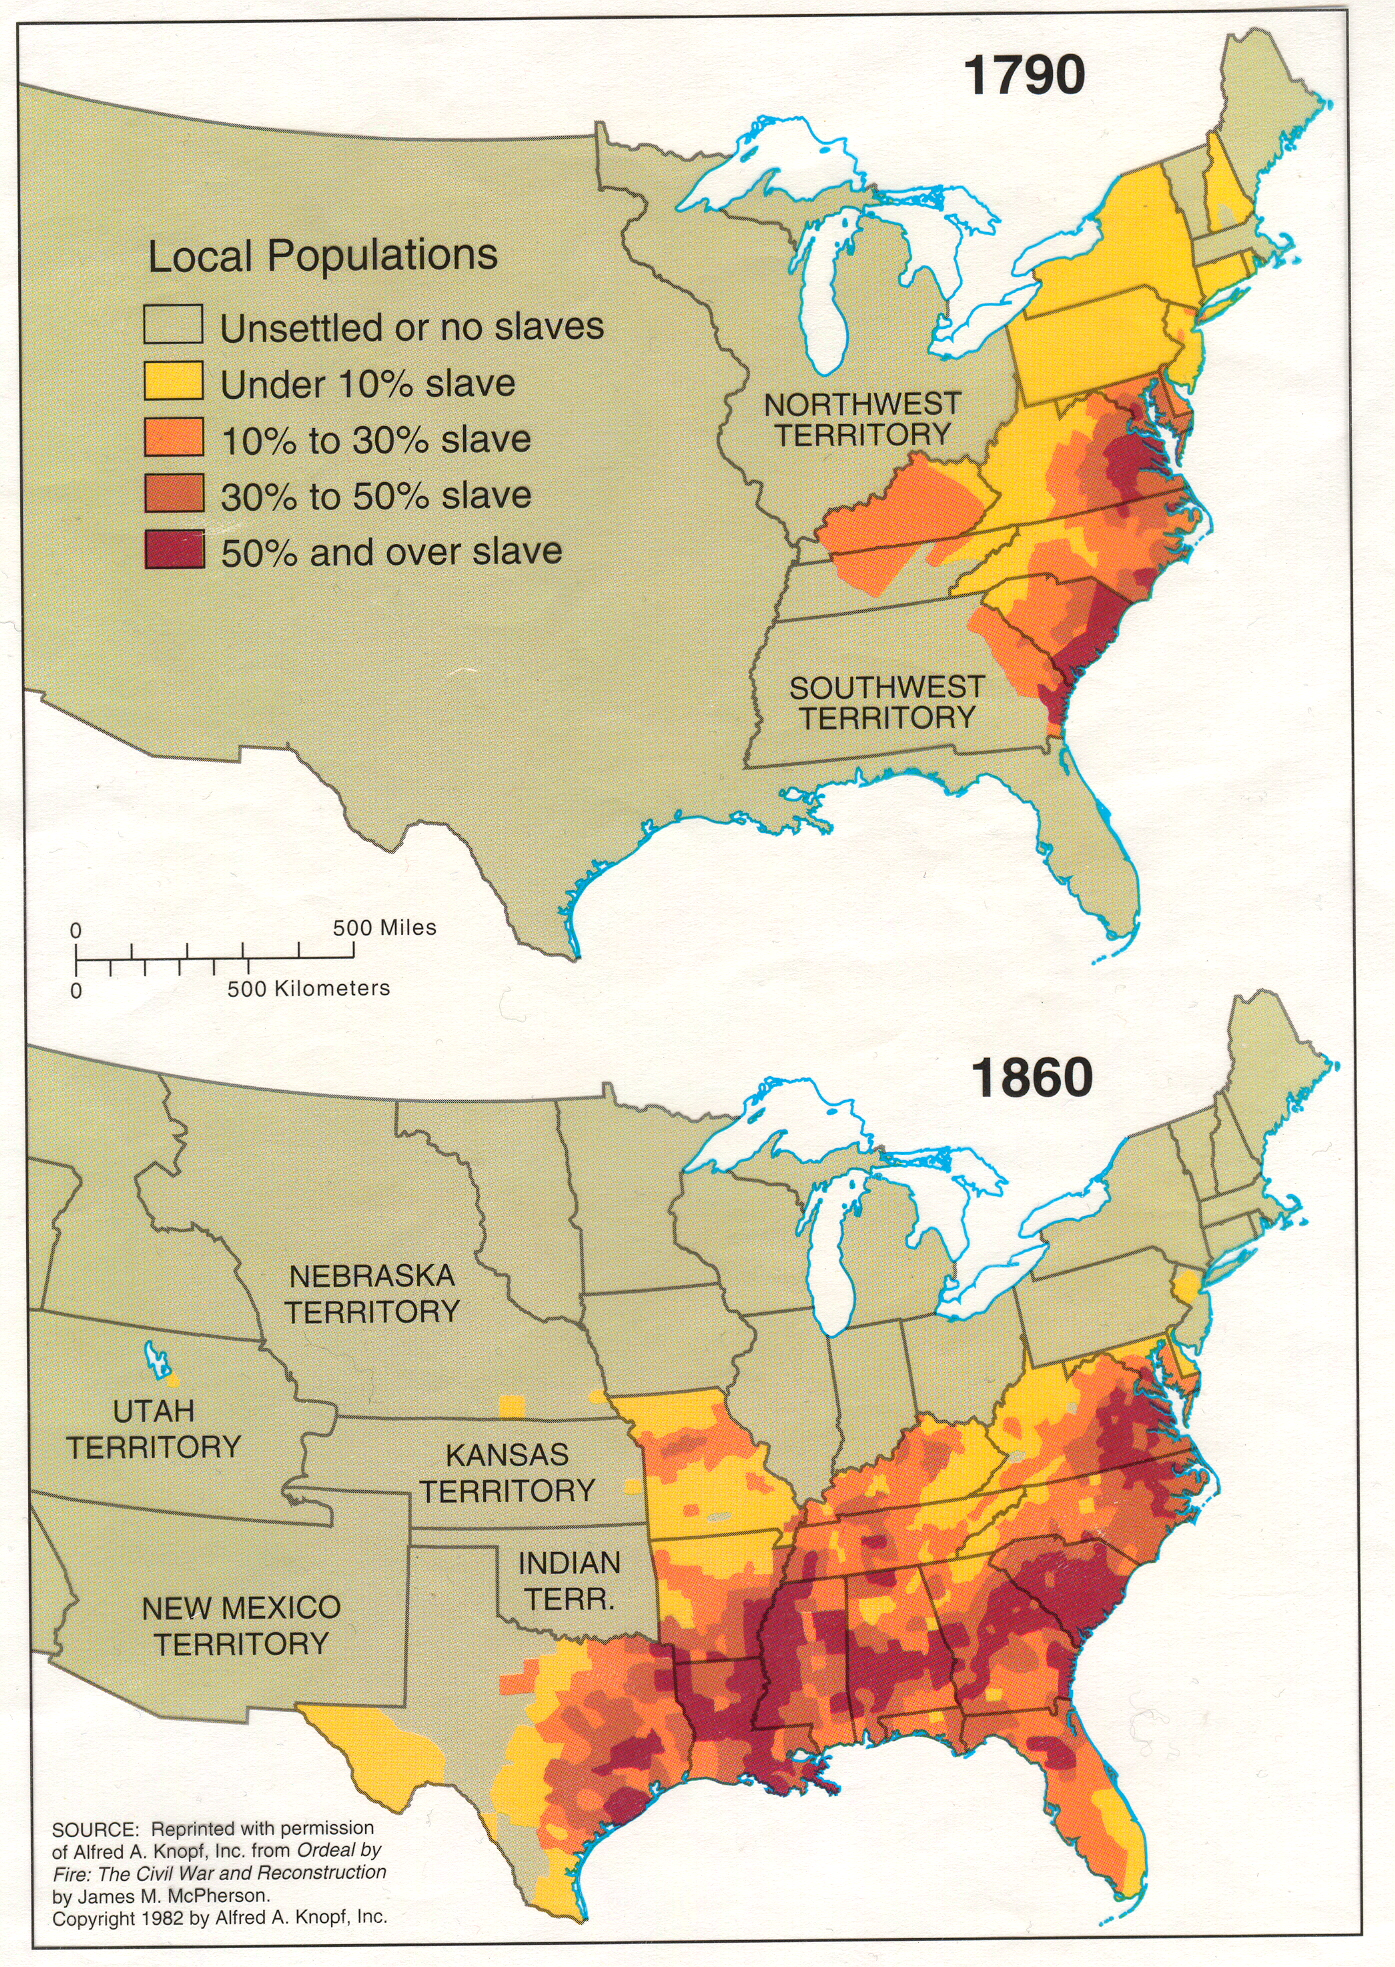 Maps That Explain America Vox - Us growing table for tomatoes via map